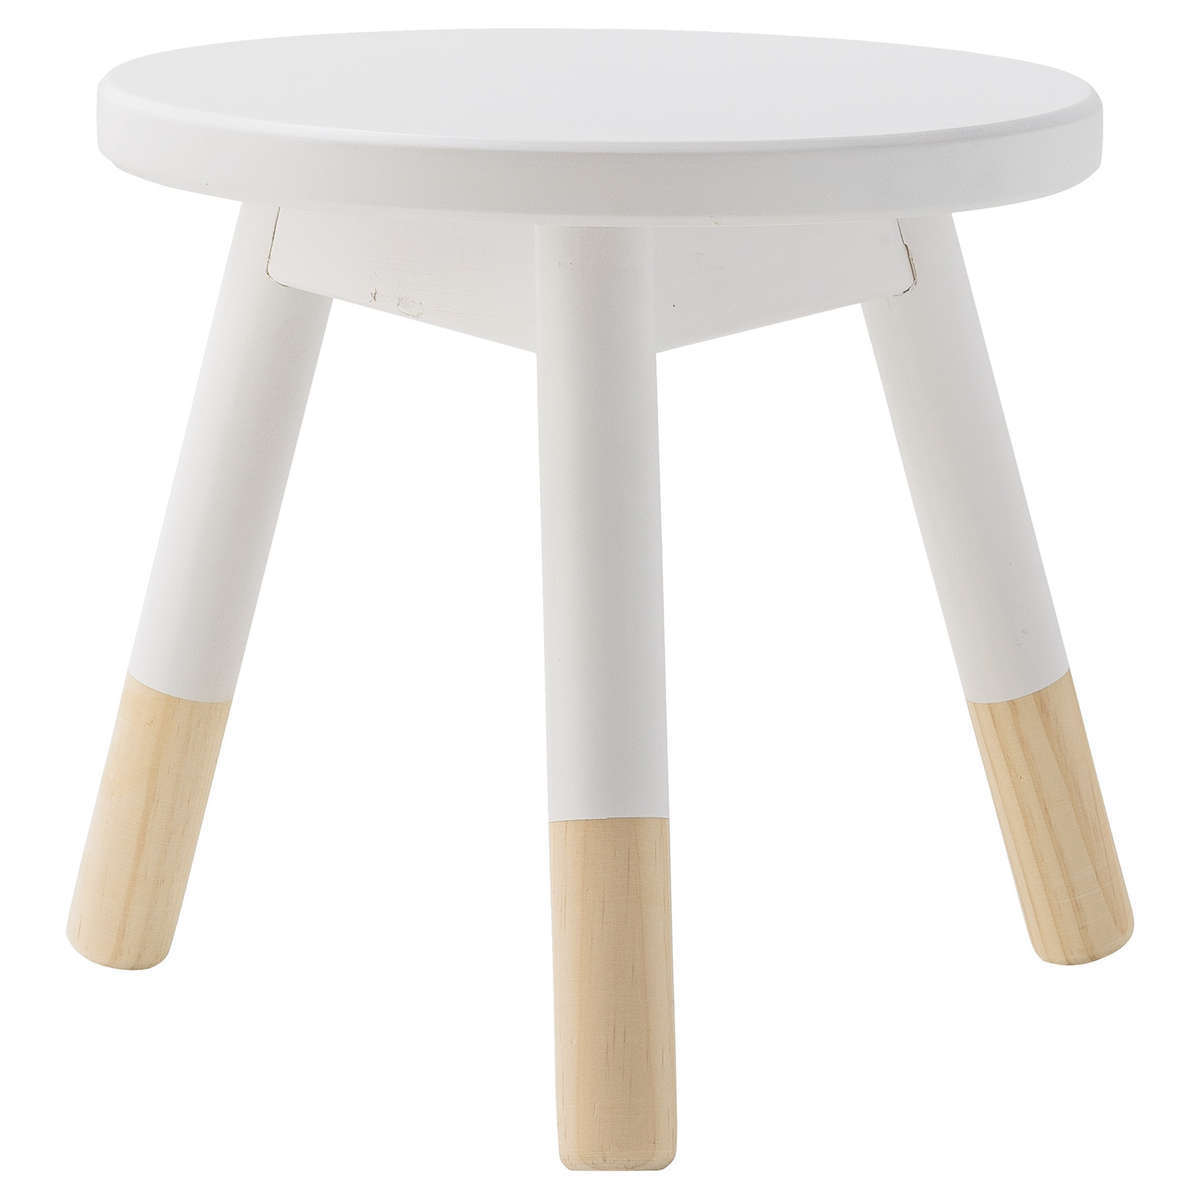 tabouret en bois blanc 50201167 achat vente table chaise sur. Black Bedroom Furniture Sets. Home Design Ideas